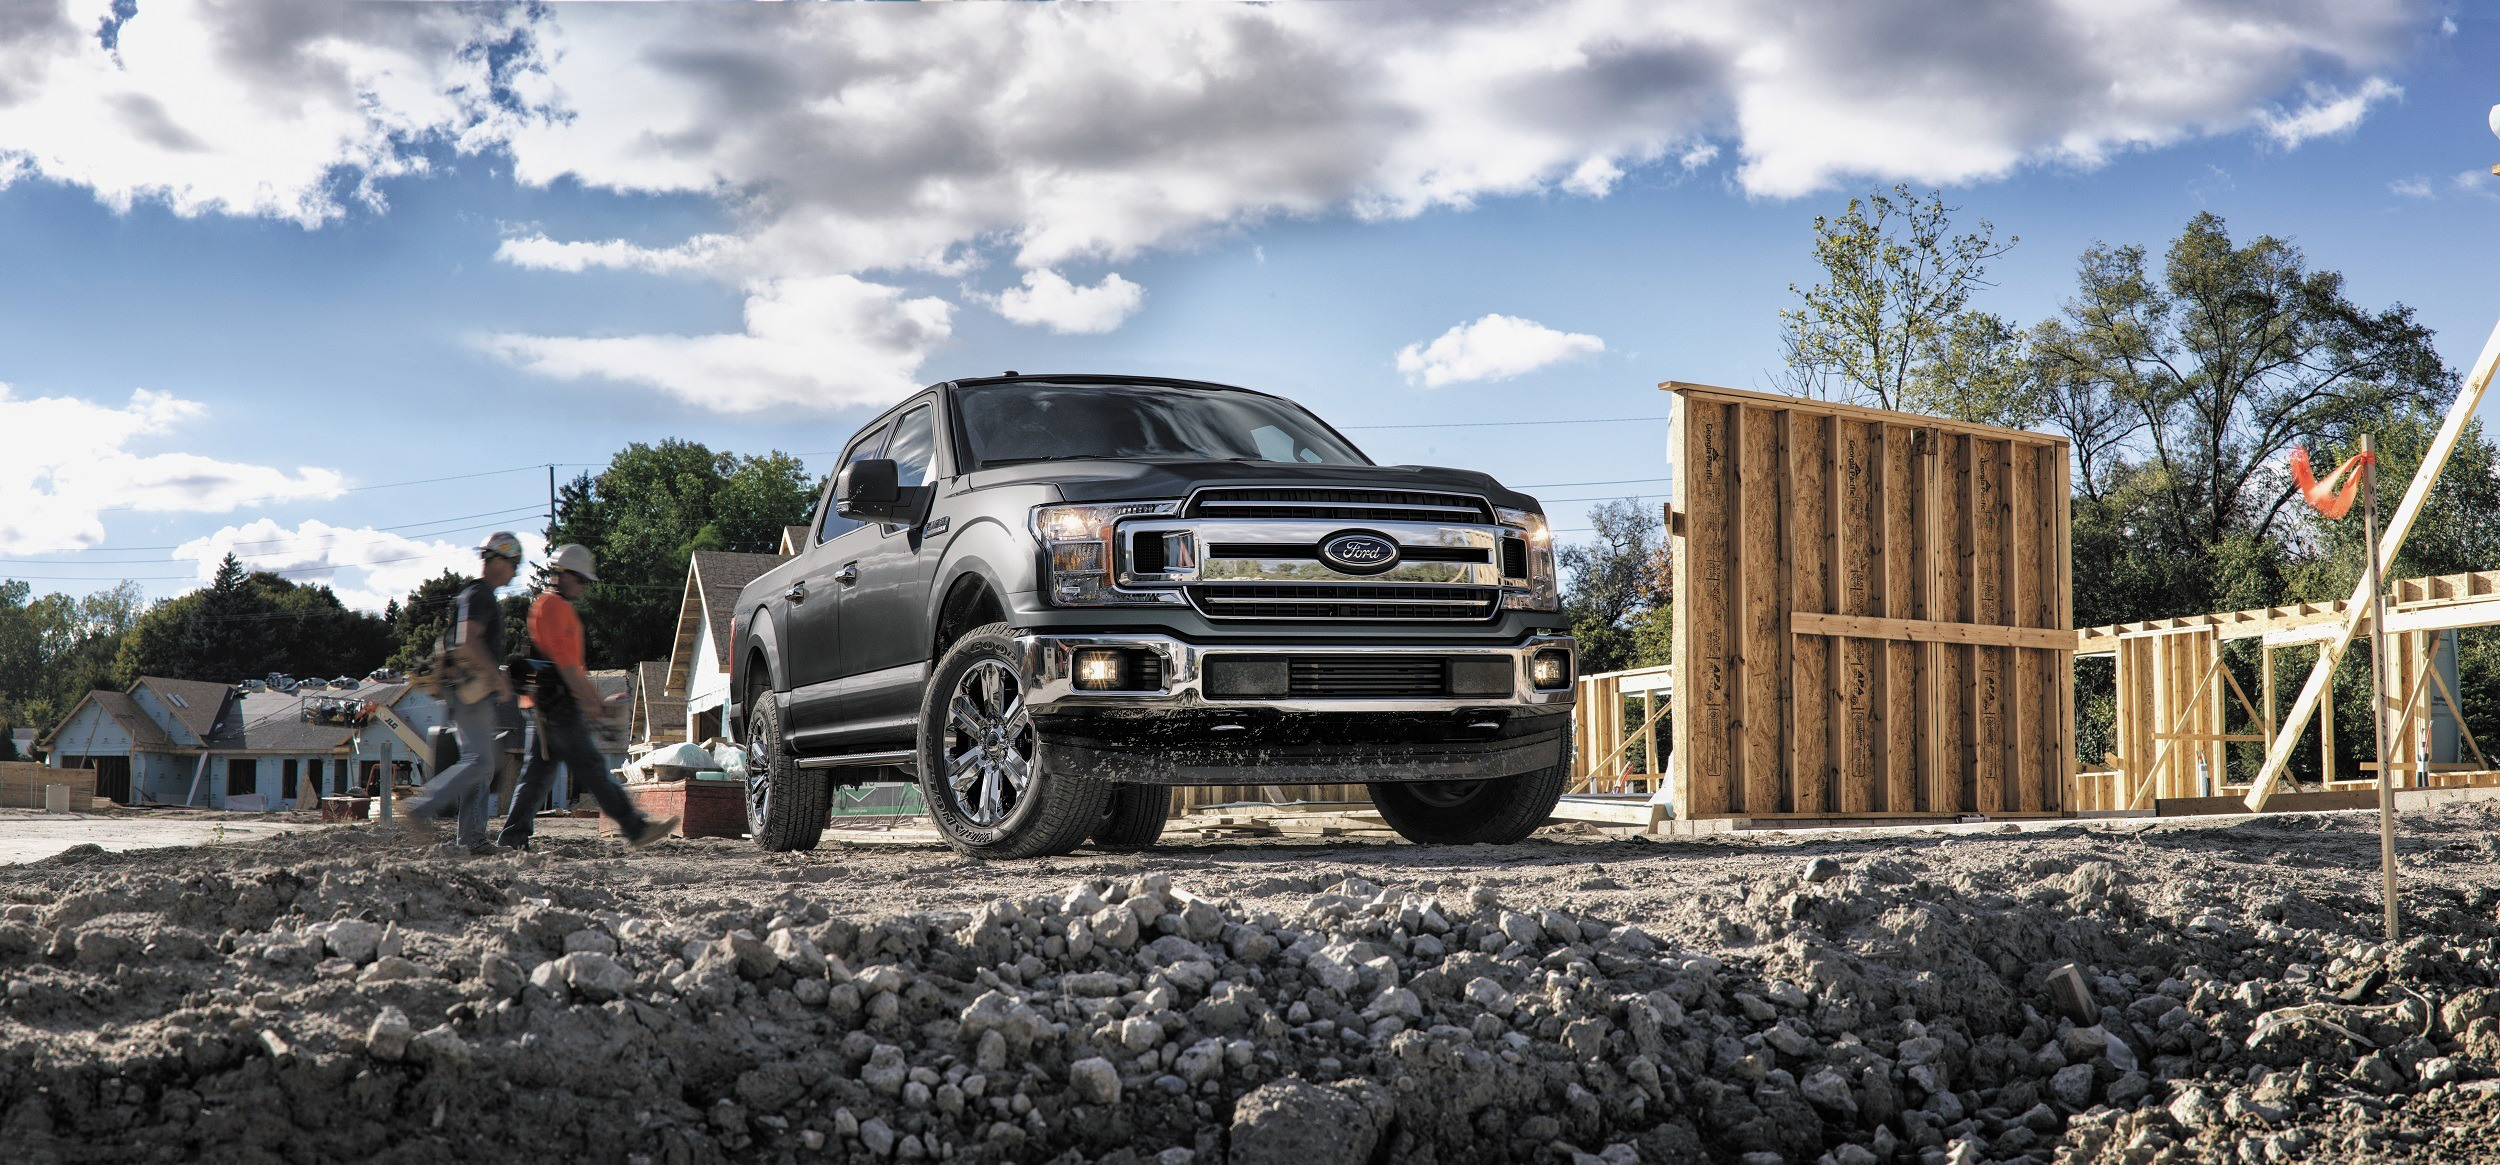 2018 ford f-150 on the jobsite